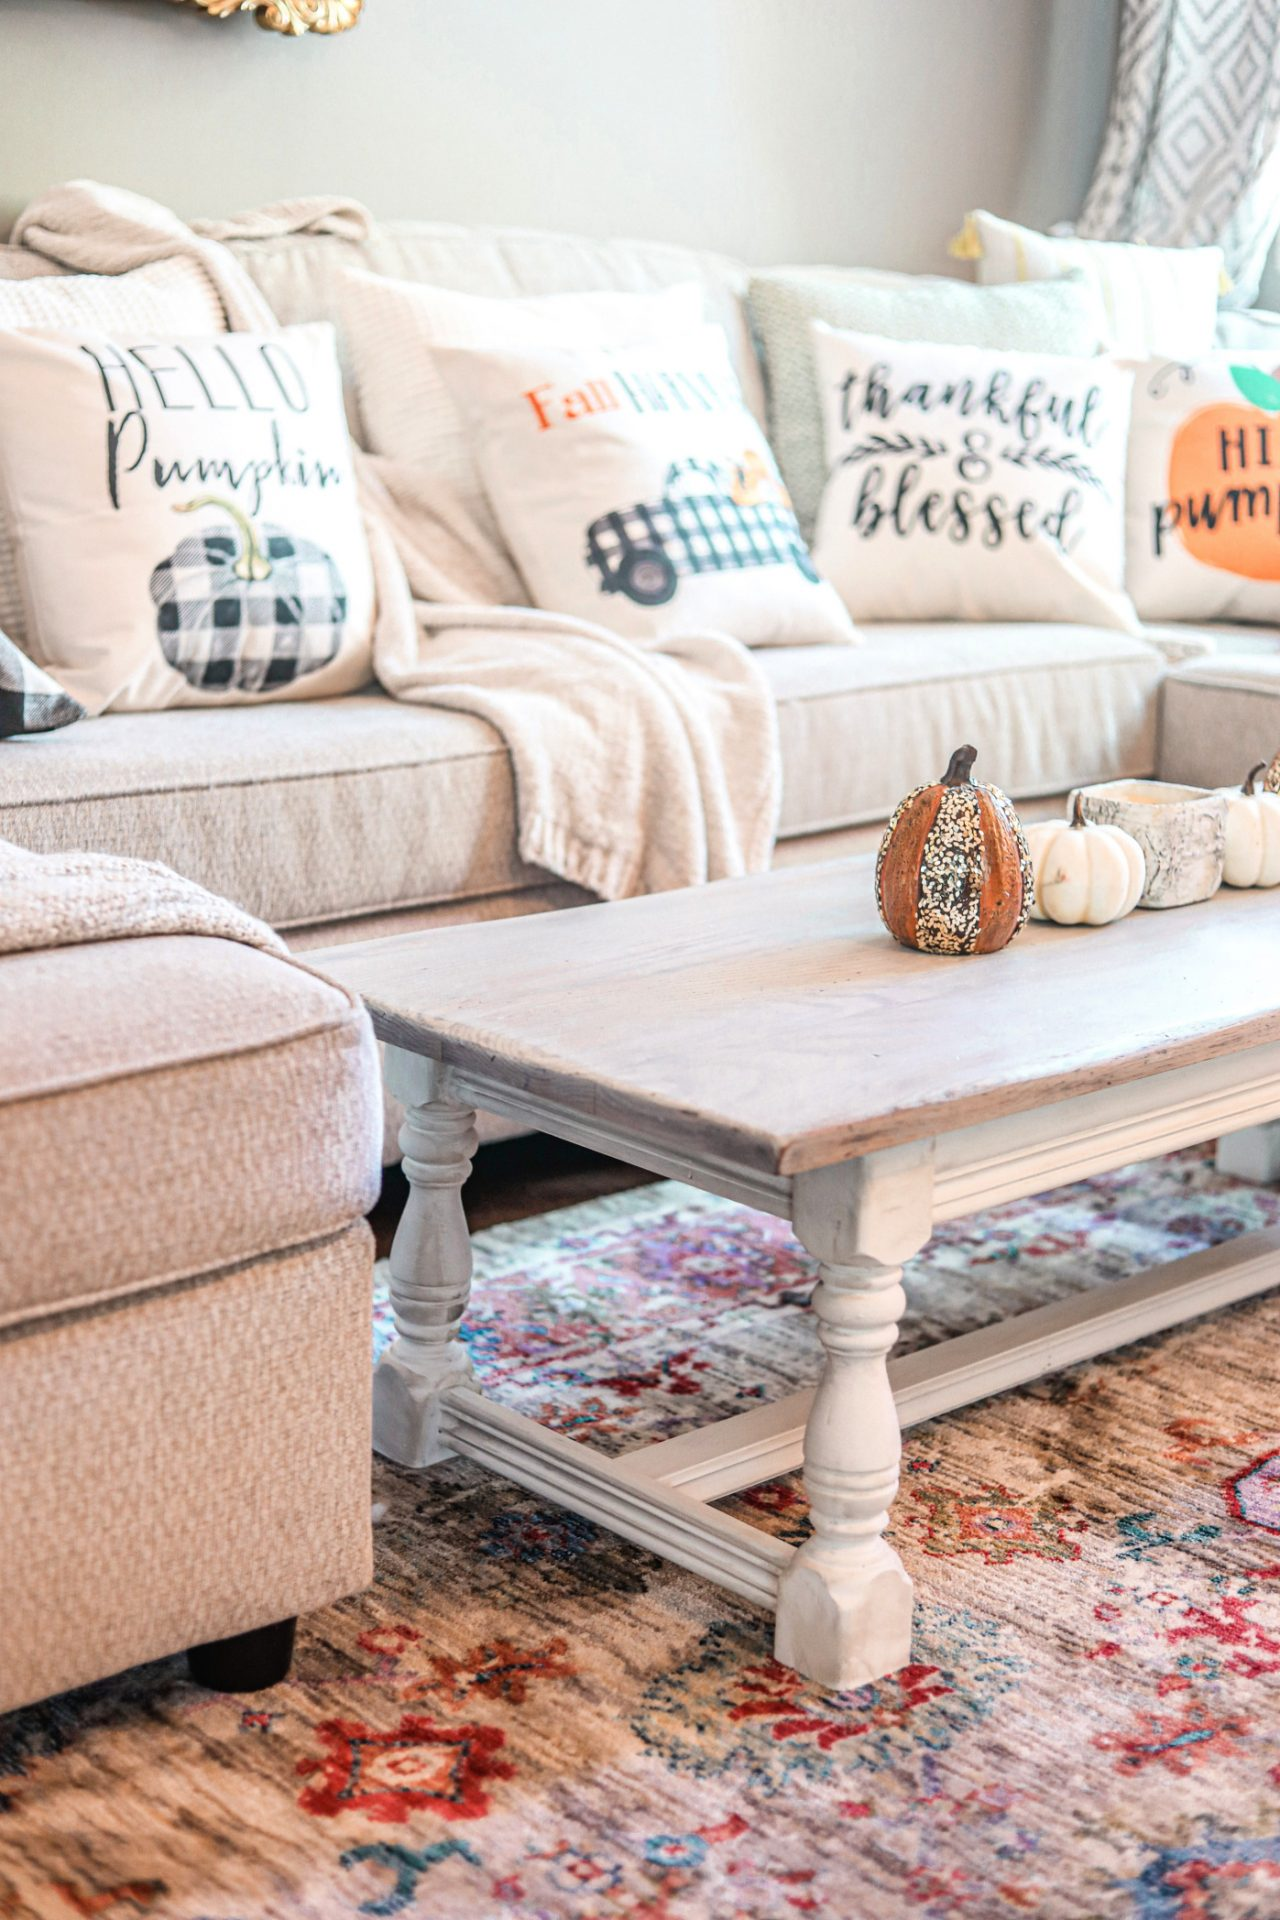 How To Whitewash & Distress Furniture: DIY Farmhouse